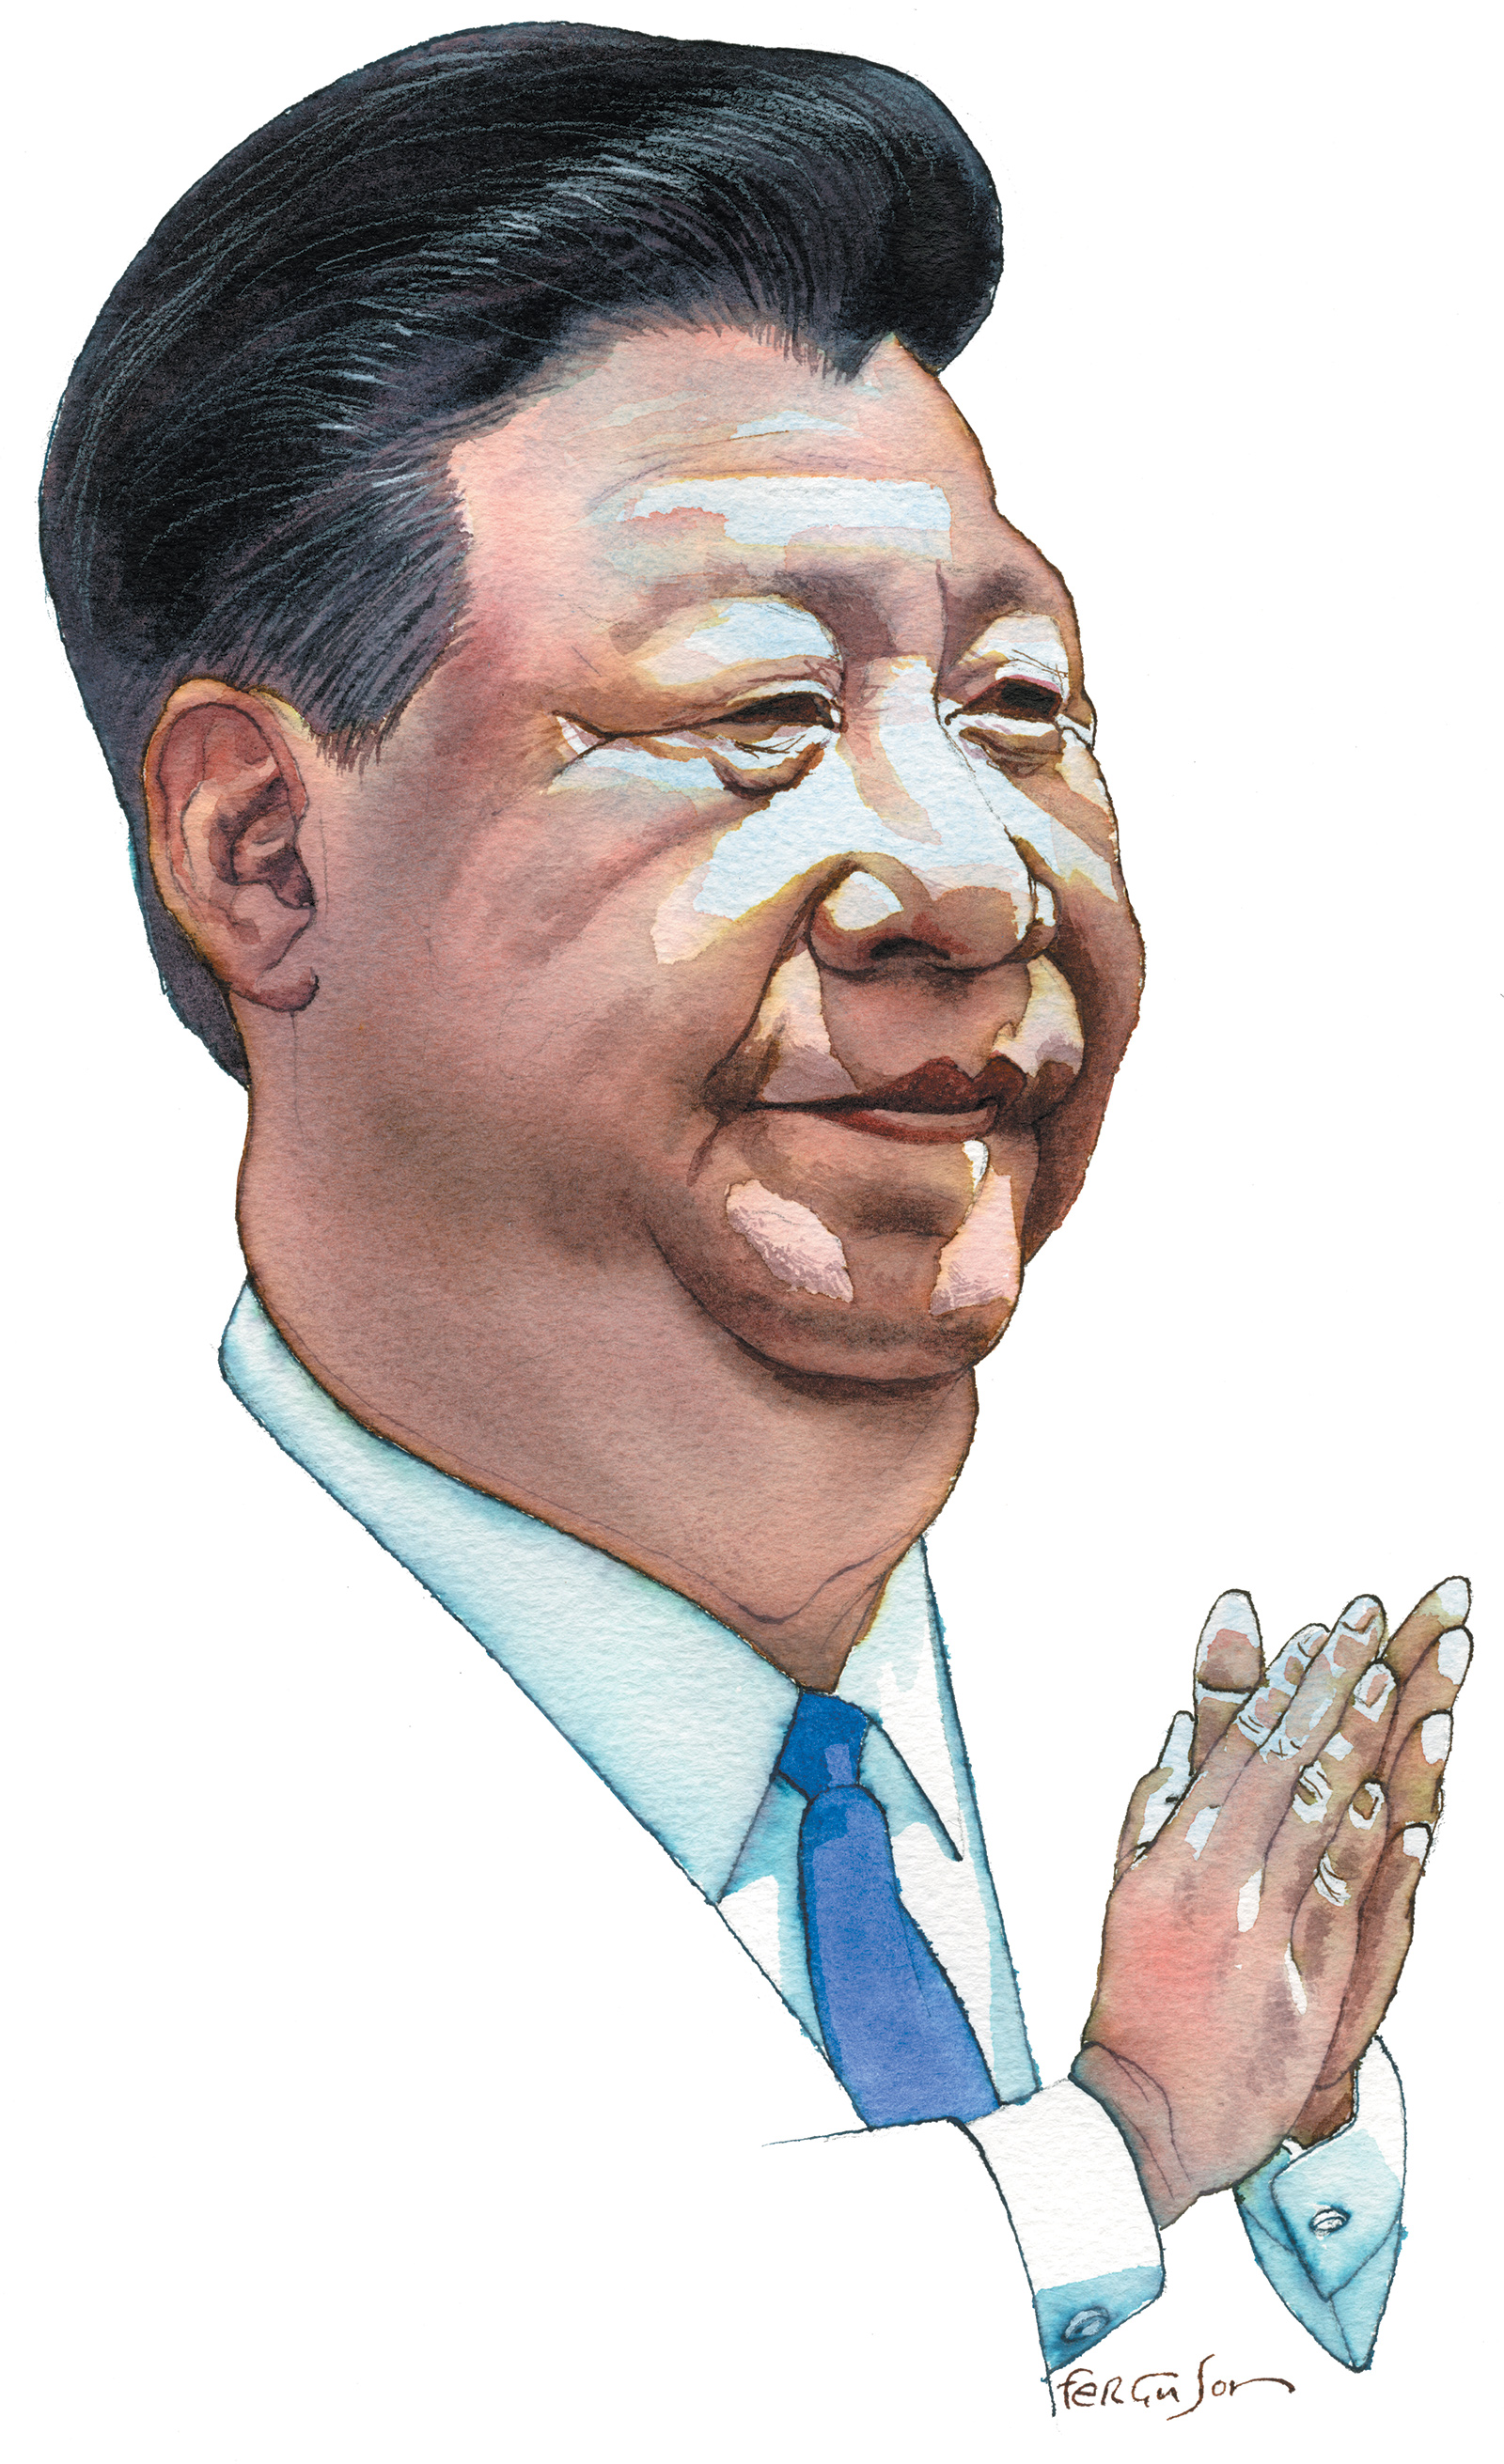 biography of xi jinping Xi jinping (习近平), male, han ethnicity, was born in june 1953 and is from fuping, shaanxi province he began his first job in january 1969 and joined the communist party of china (cpc) in january 1974.